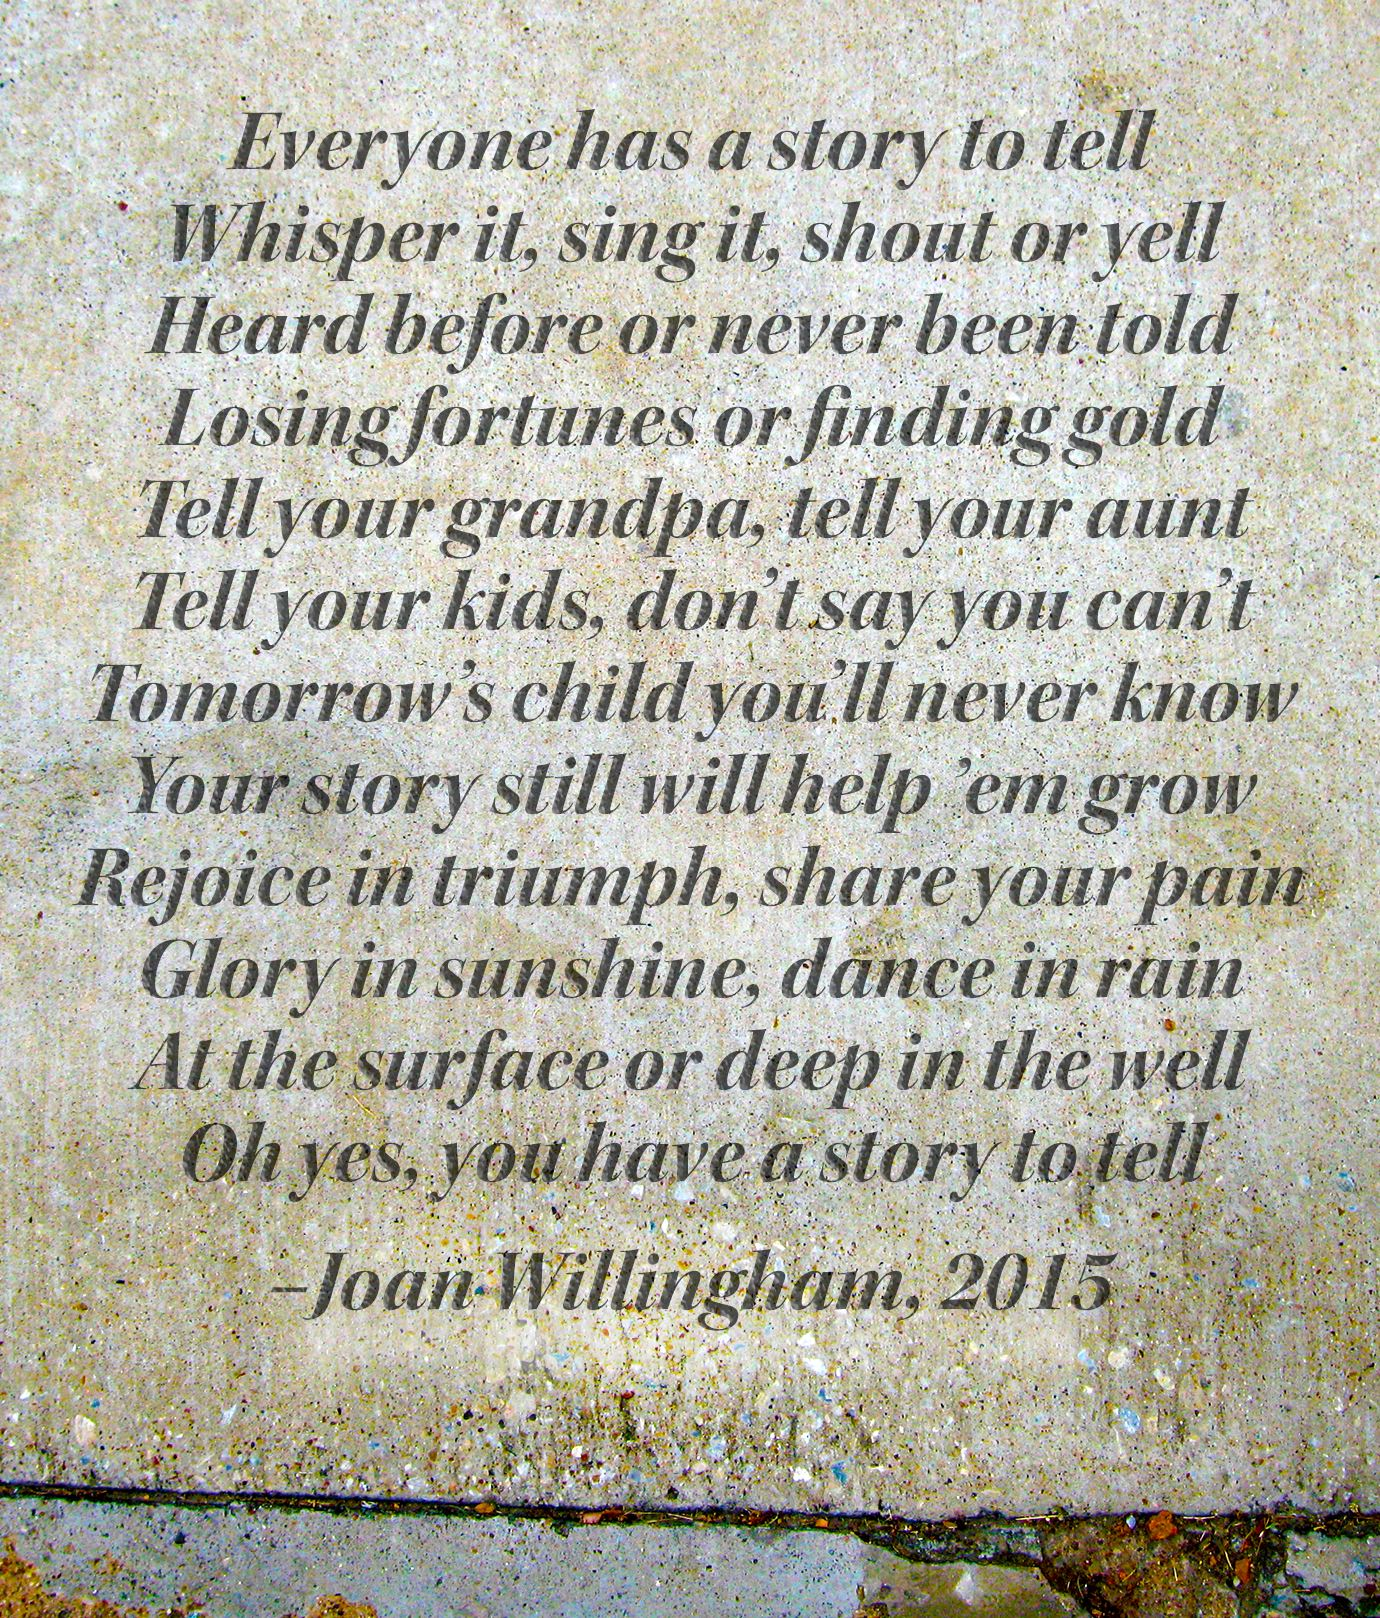 Everyone has a story to tell whisper it, sing it, shout or yet